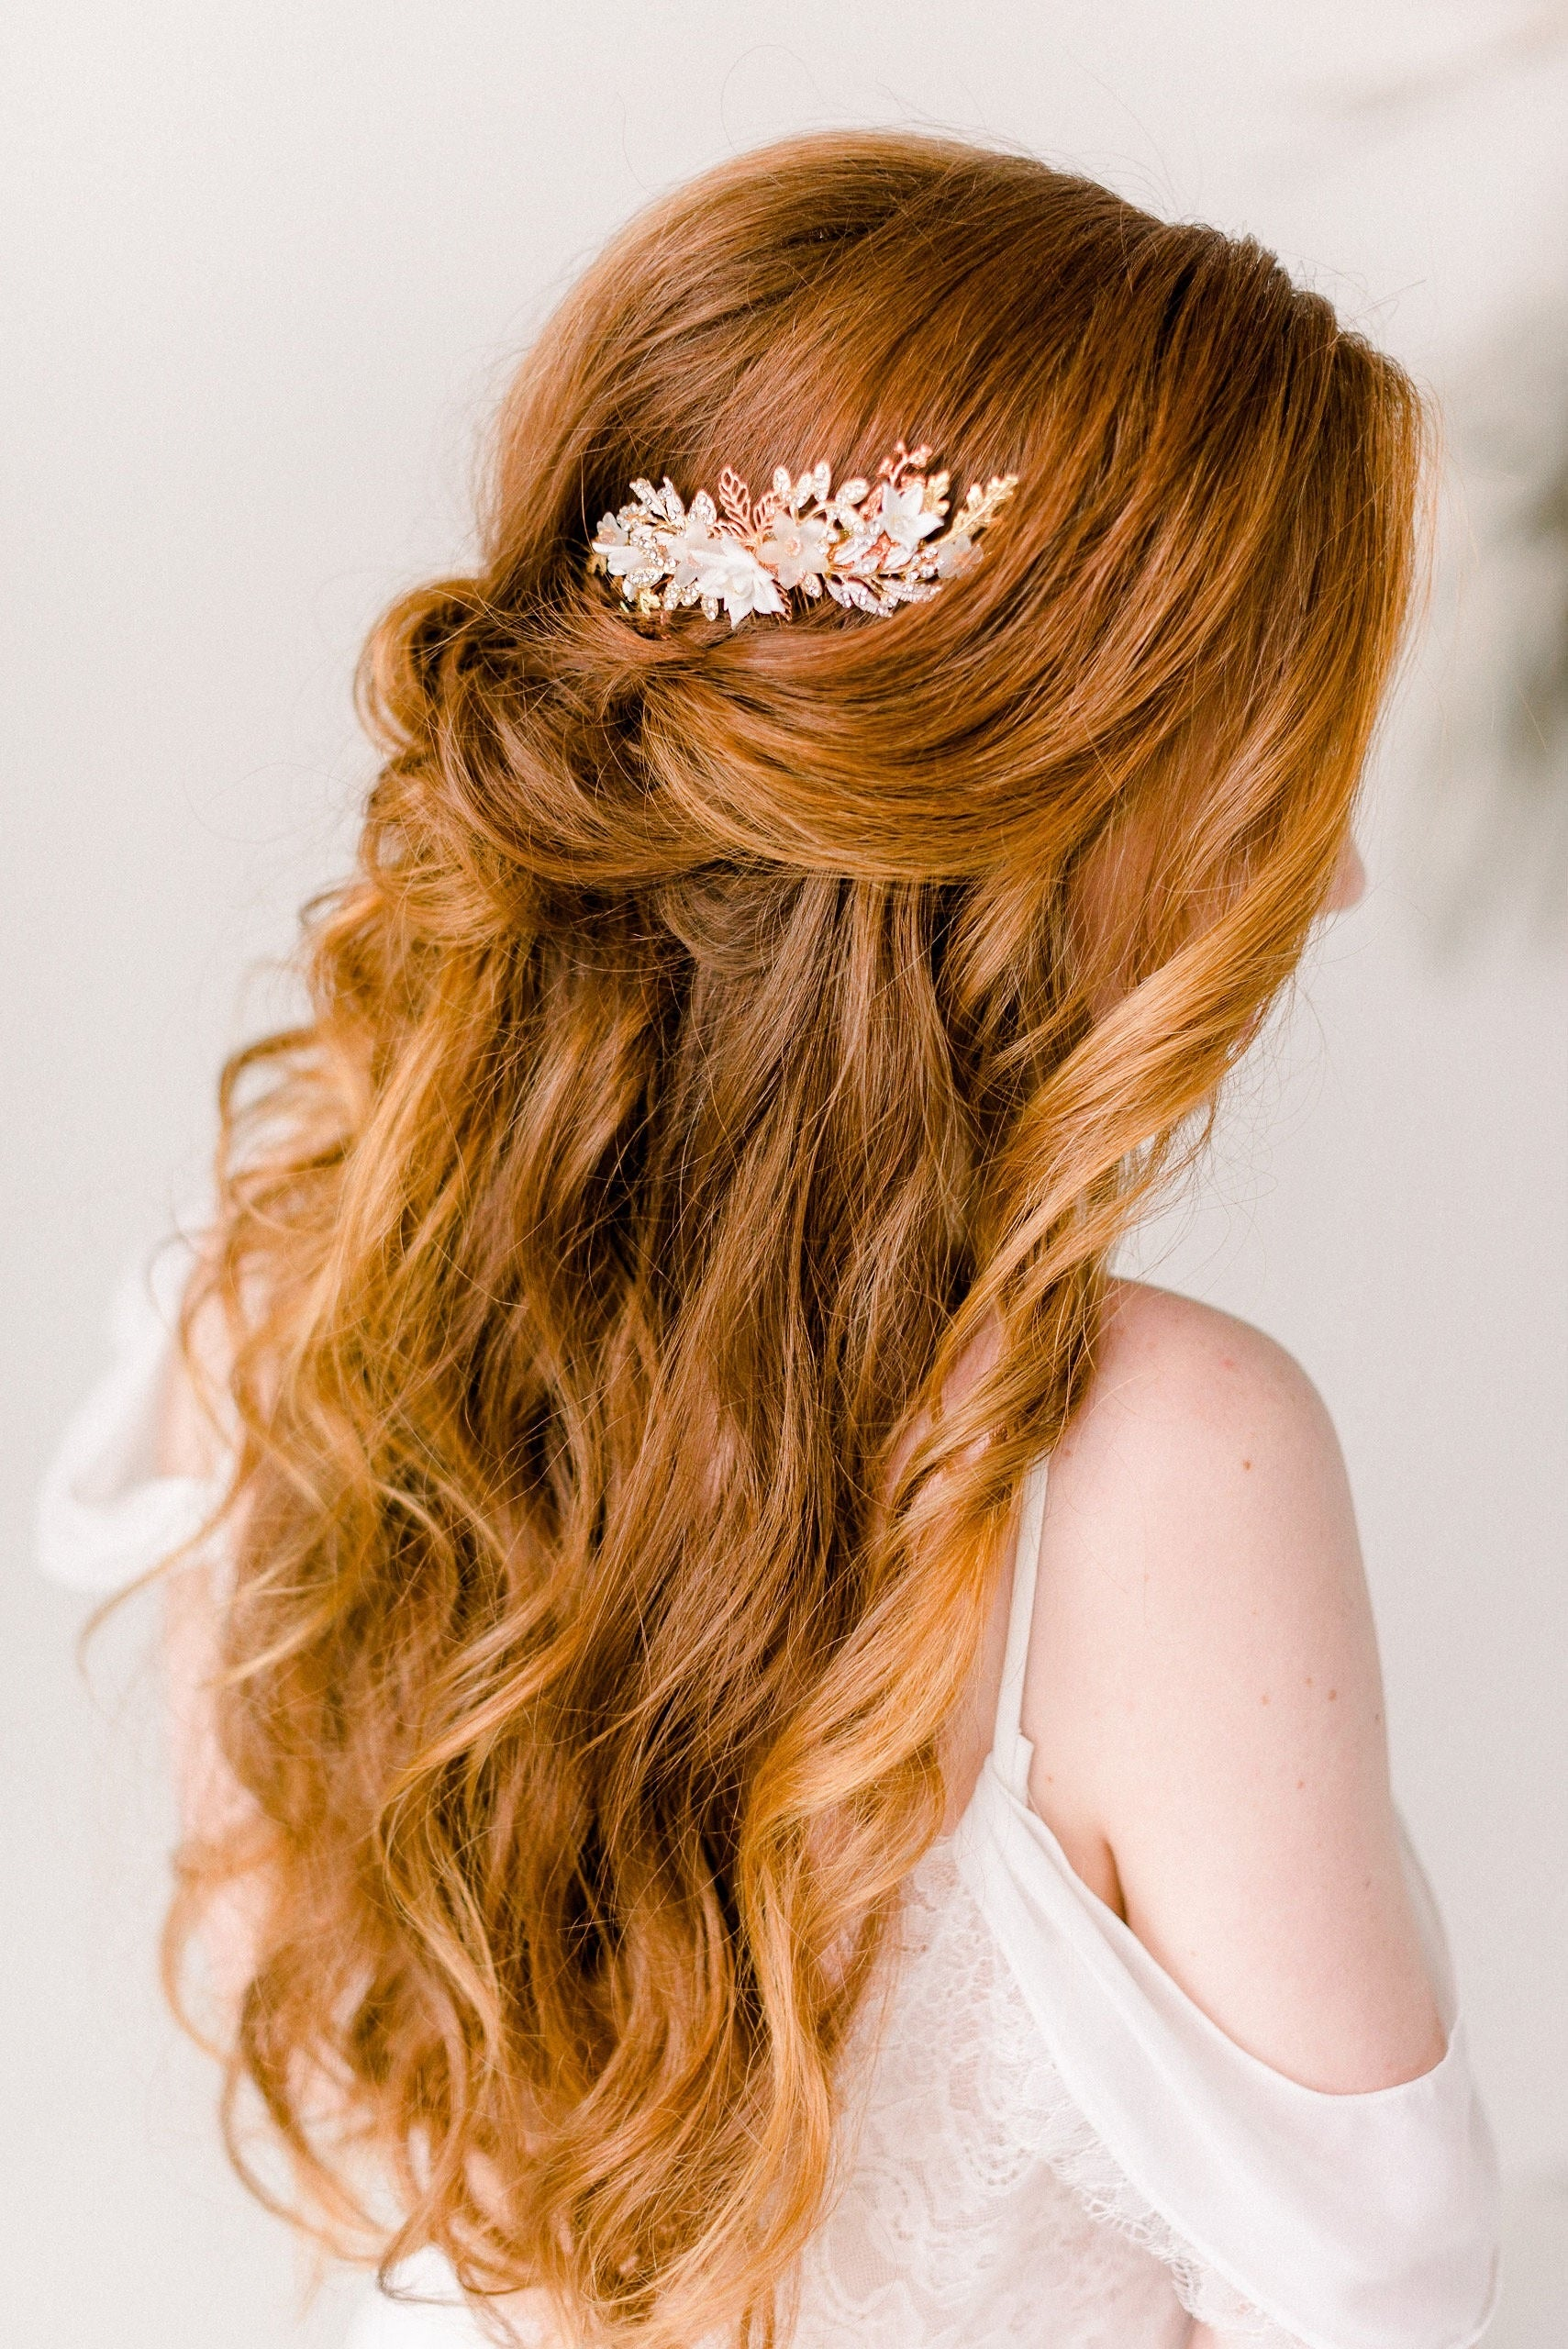 Rose gold blush flower comb - Style 4002- Ready to ship - Tessa Kim